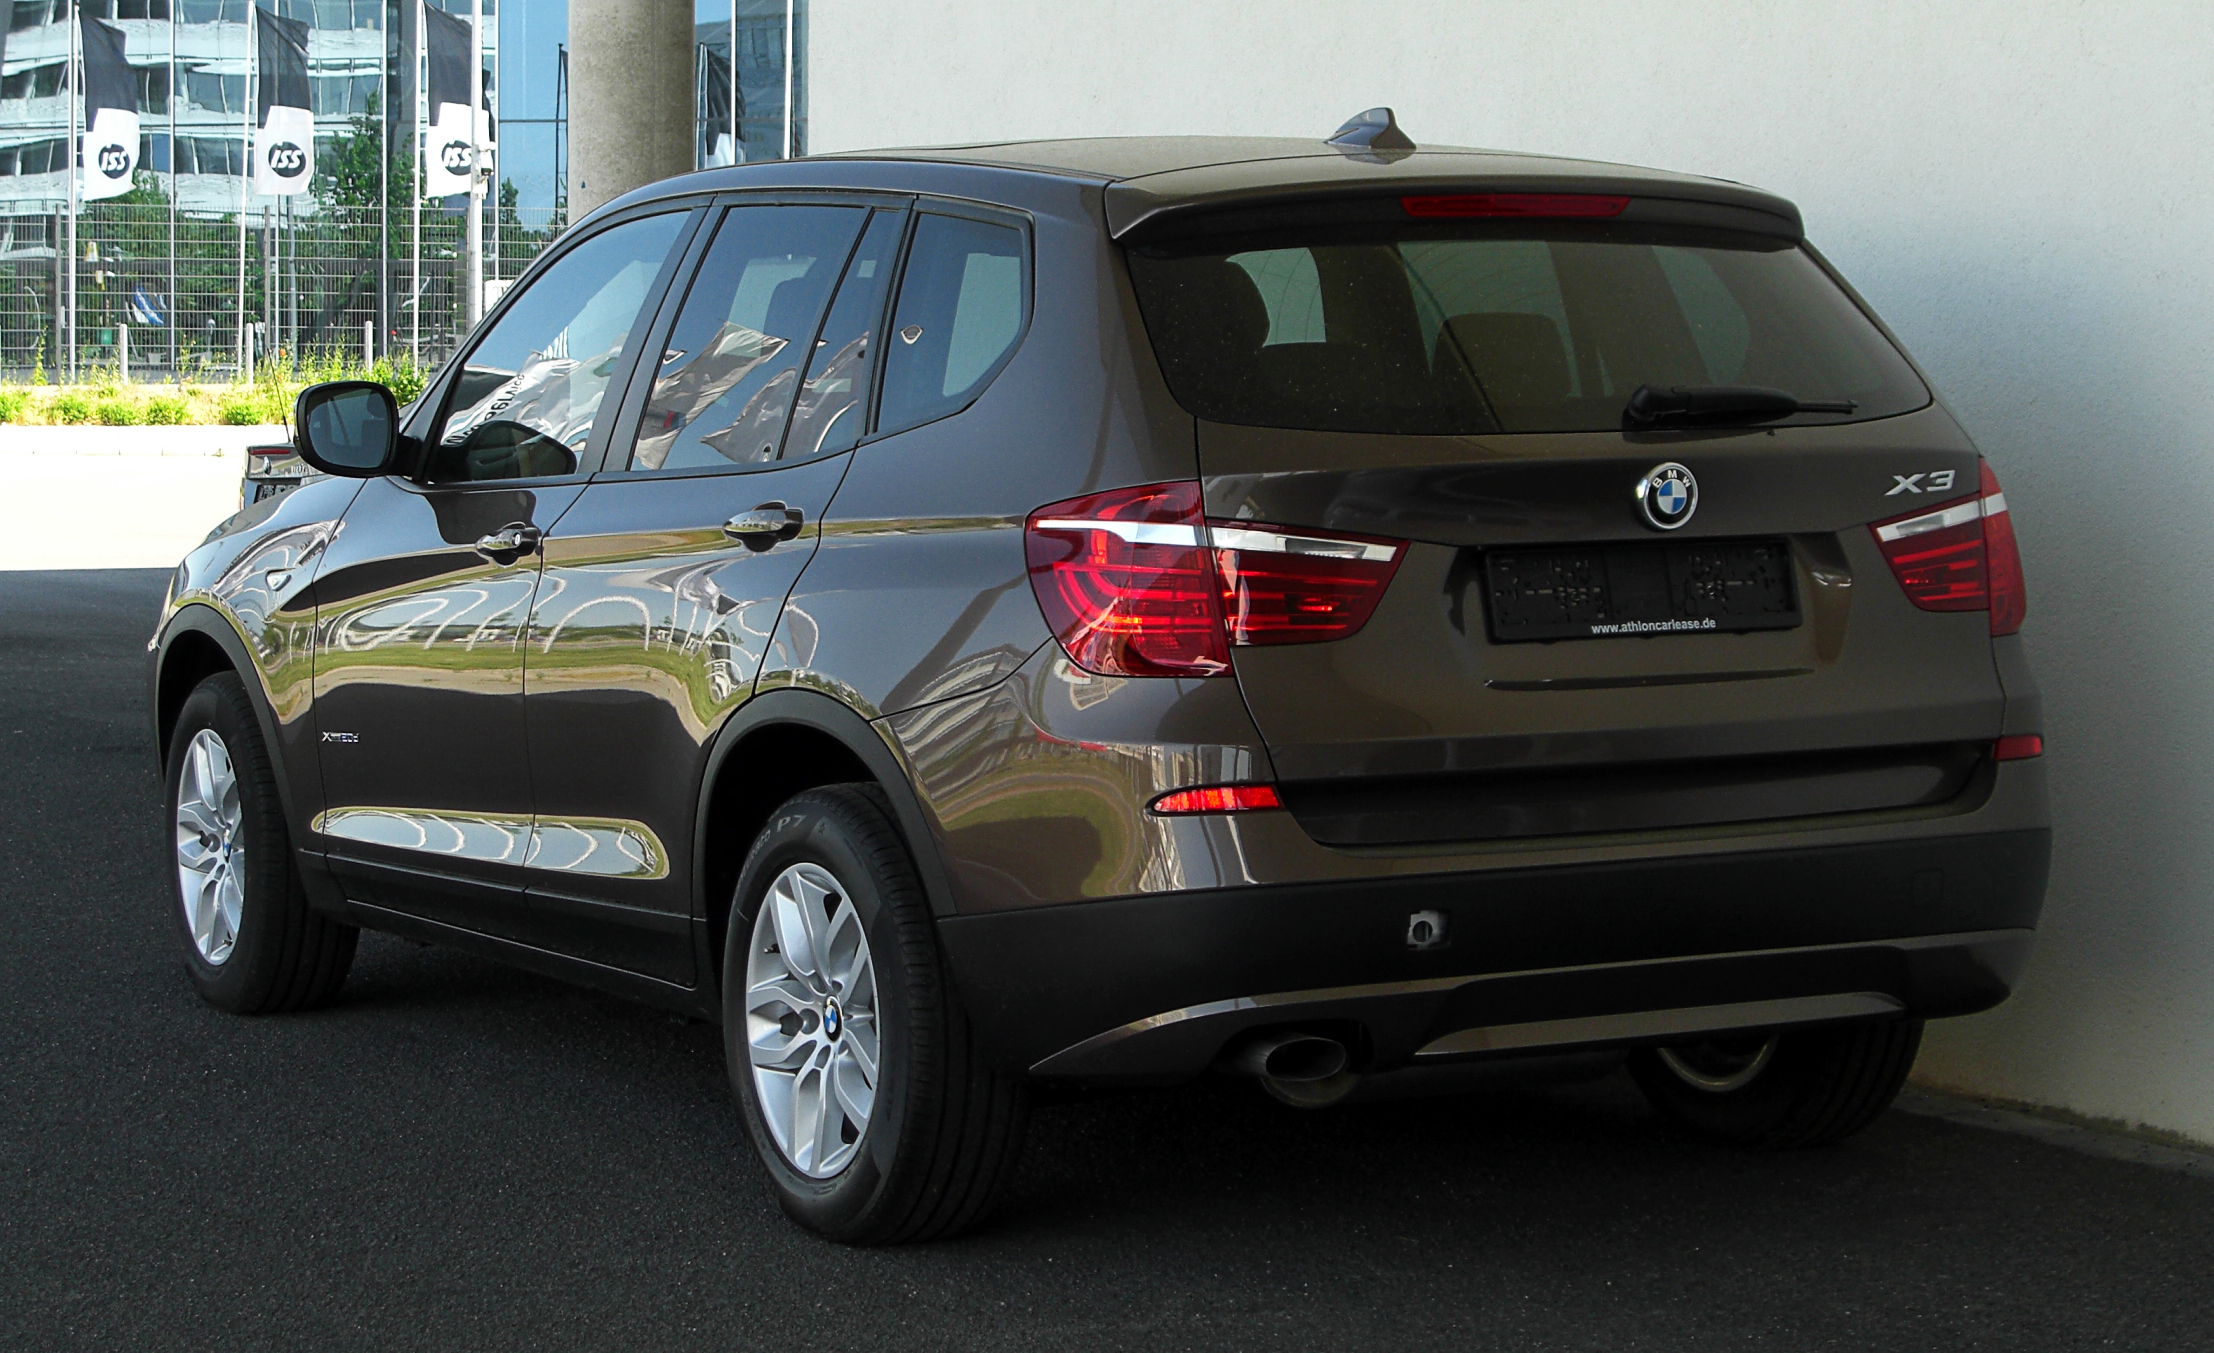 file bmw x3 xdrive20d f25 heckansicht 1 mai 2011 d wikimedia commons. Black Bedroom Furniture Sets. Home Design Ideas